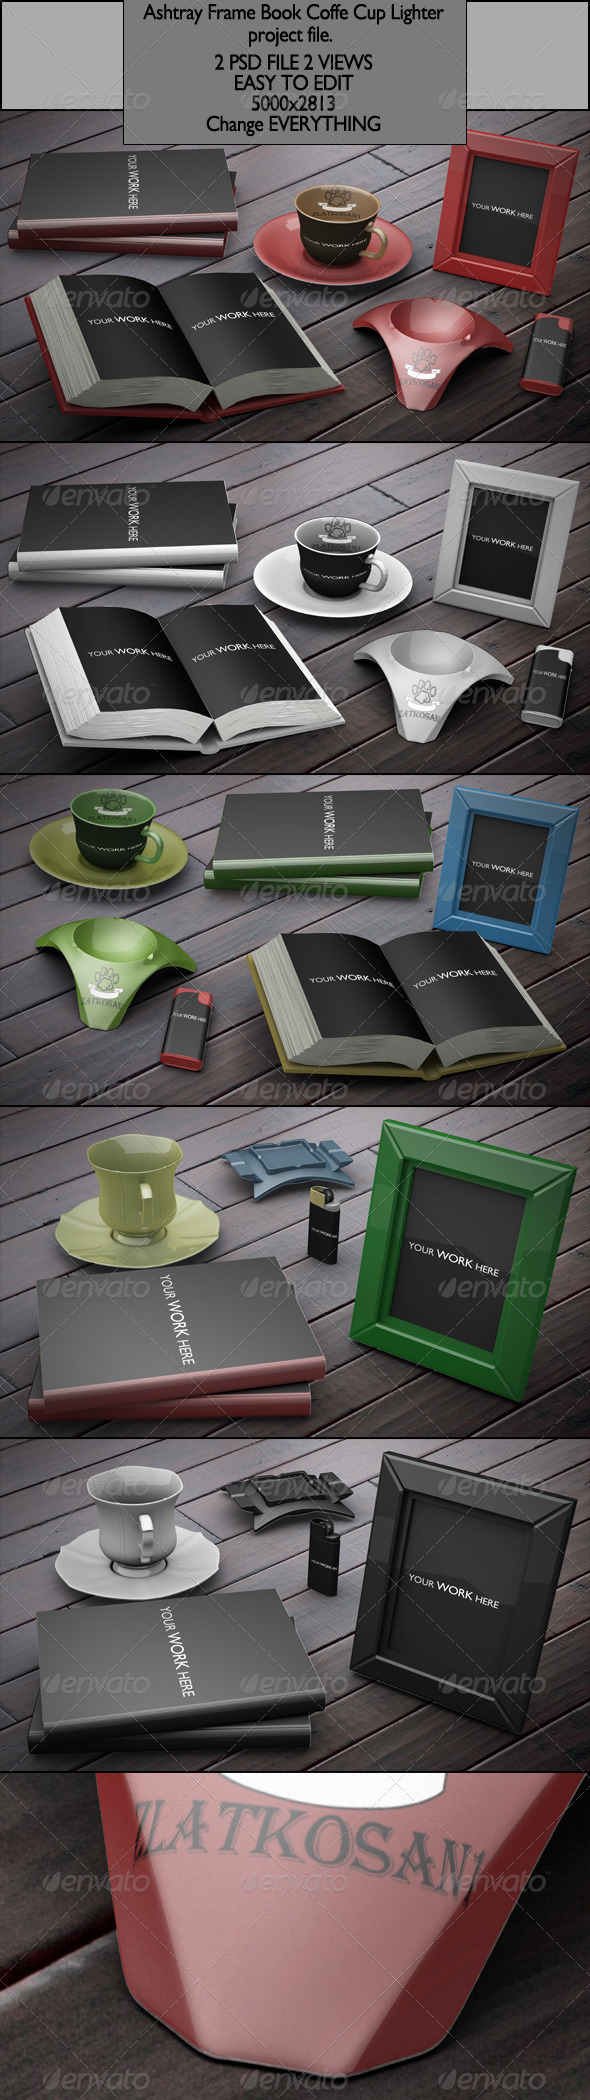 Ashtray Frame Book Coffe Cup Lighter project file - Photo Templates Graphics